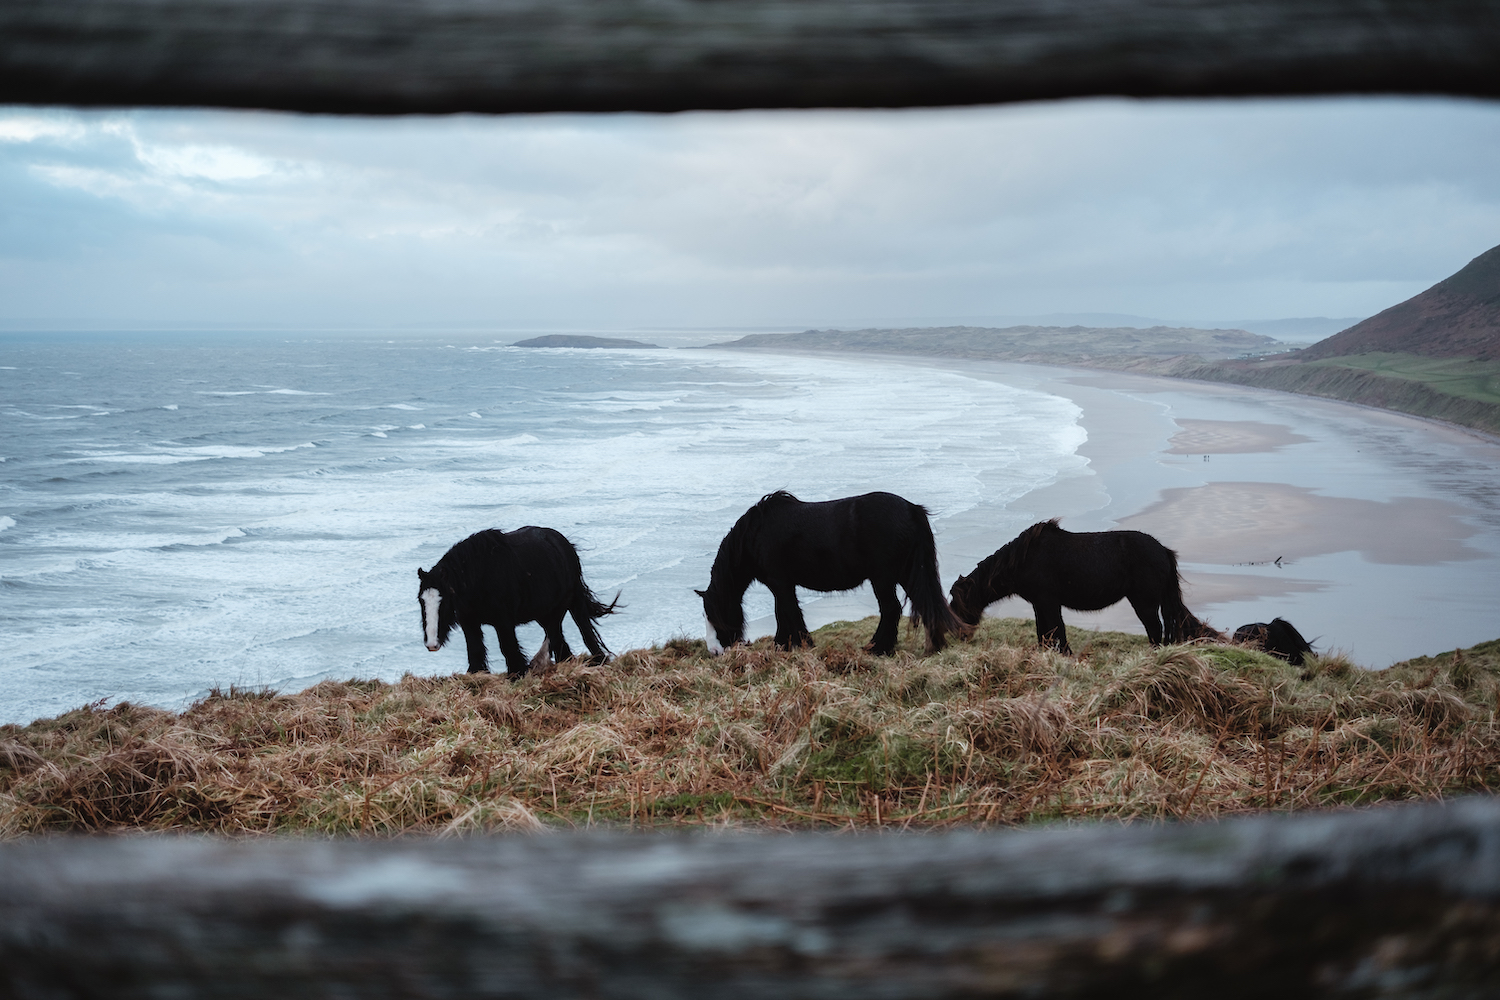 Wild horses graze in Rhossili Bay (Gower Peninsula, South Wales).